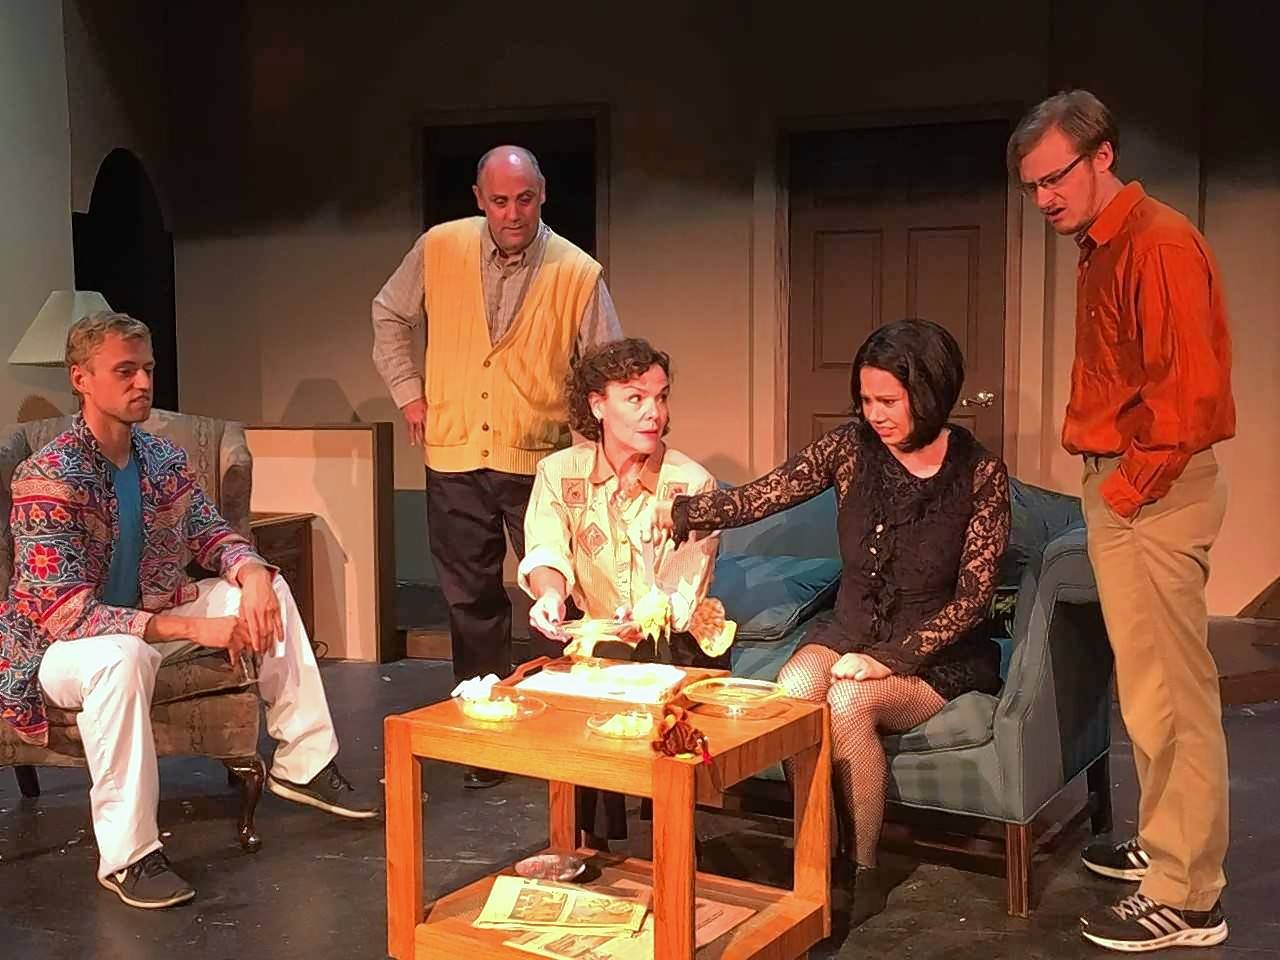 "Richard (Peter Surma), Bill (Tom Hussey), Ruthie (Shannon Mayhall), Maddie (Jocelyn Adamski) and Thomas (Sean Alyn Young) prepare to sample an old family recipe during a rehearsal of Steel Beam Theatre's production of ""Making God Laugh."" The comedy/drama explores how family relationships grow and change over 30 years."